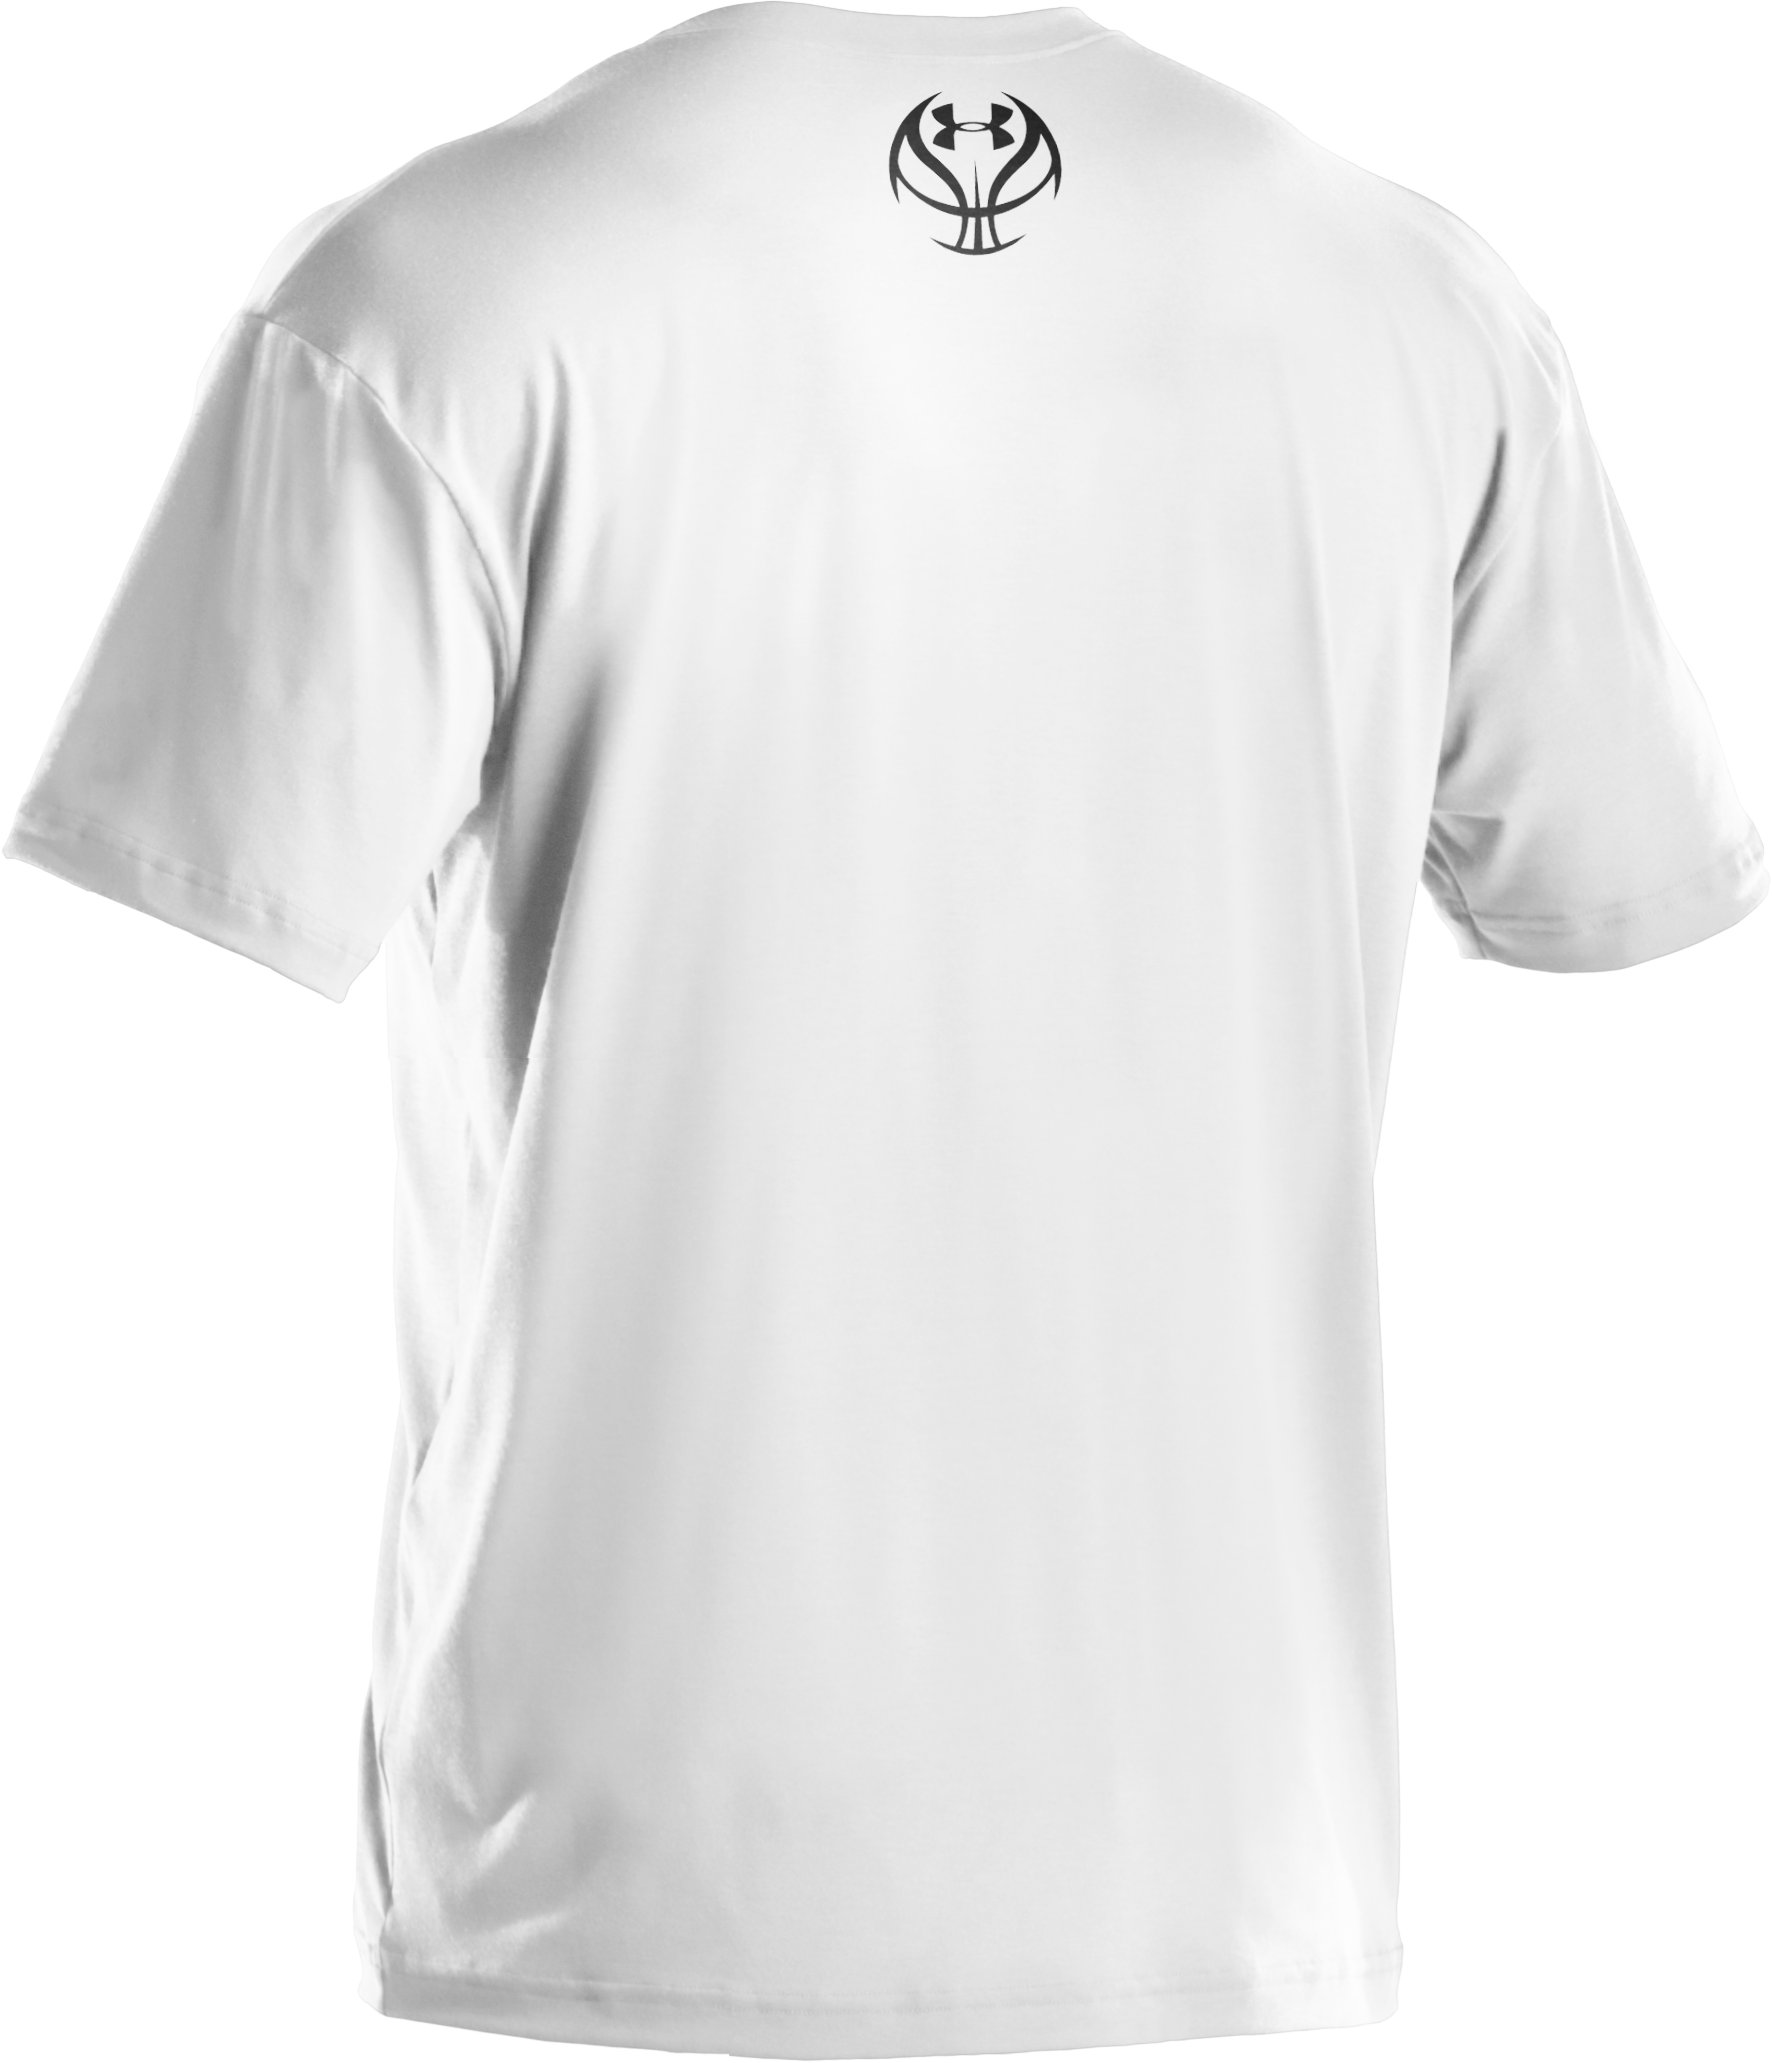 Boys' UA Splatter Icon T-Shirt, White,